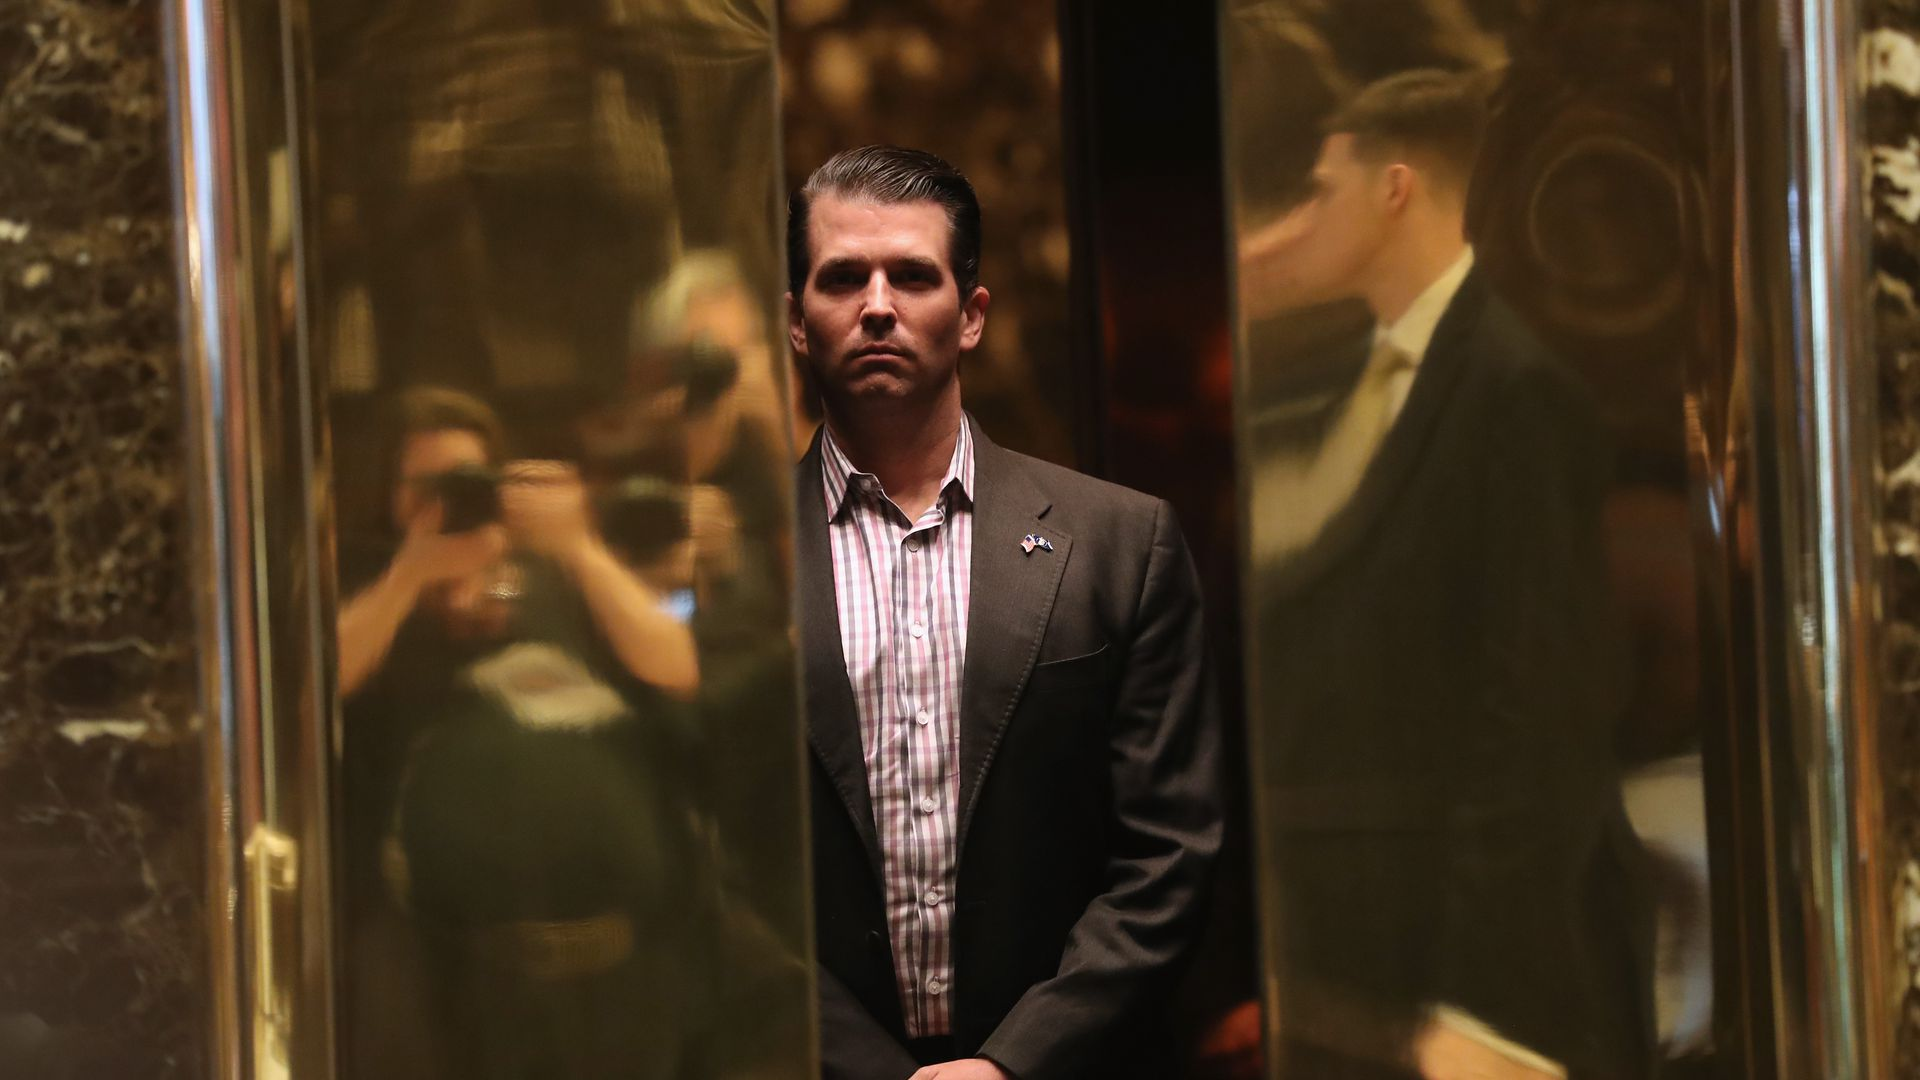 Donald Trump Jr. at Trump Tower